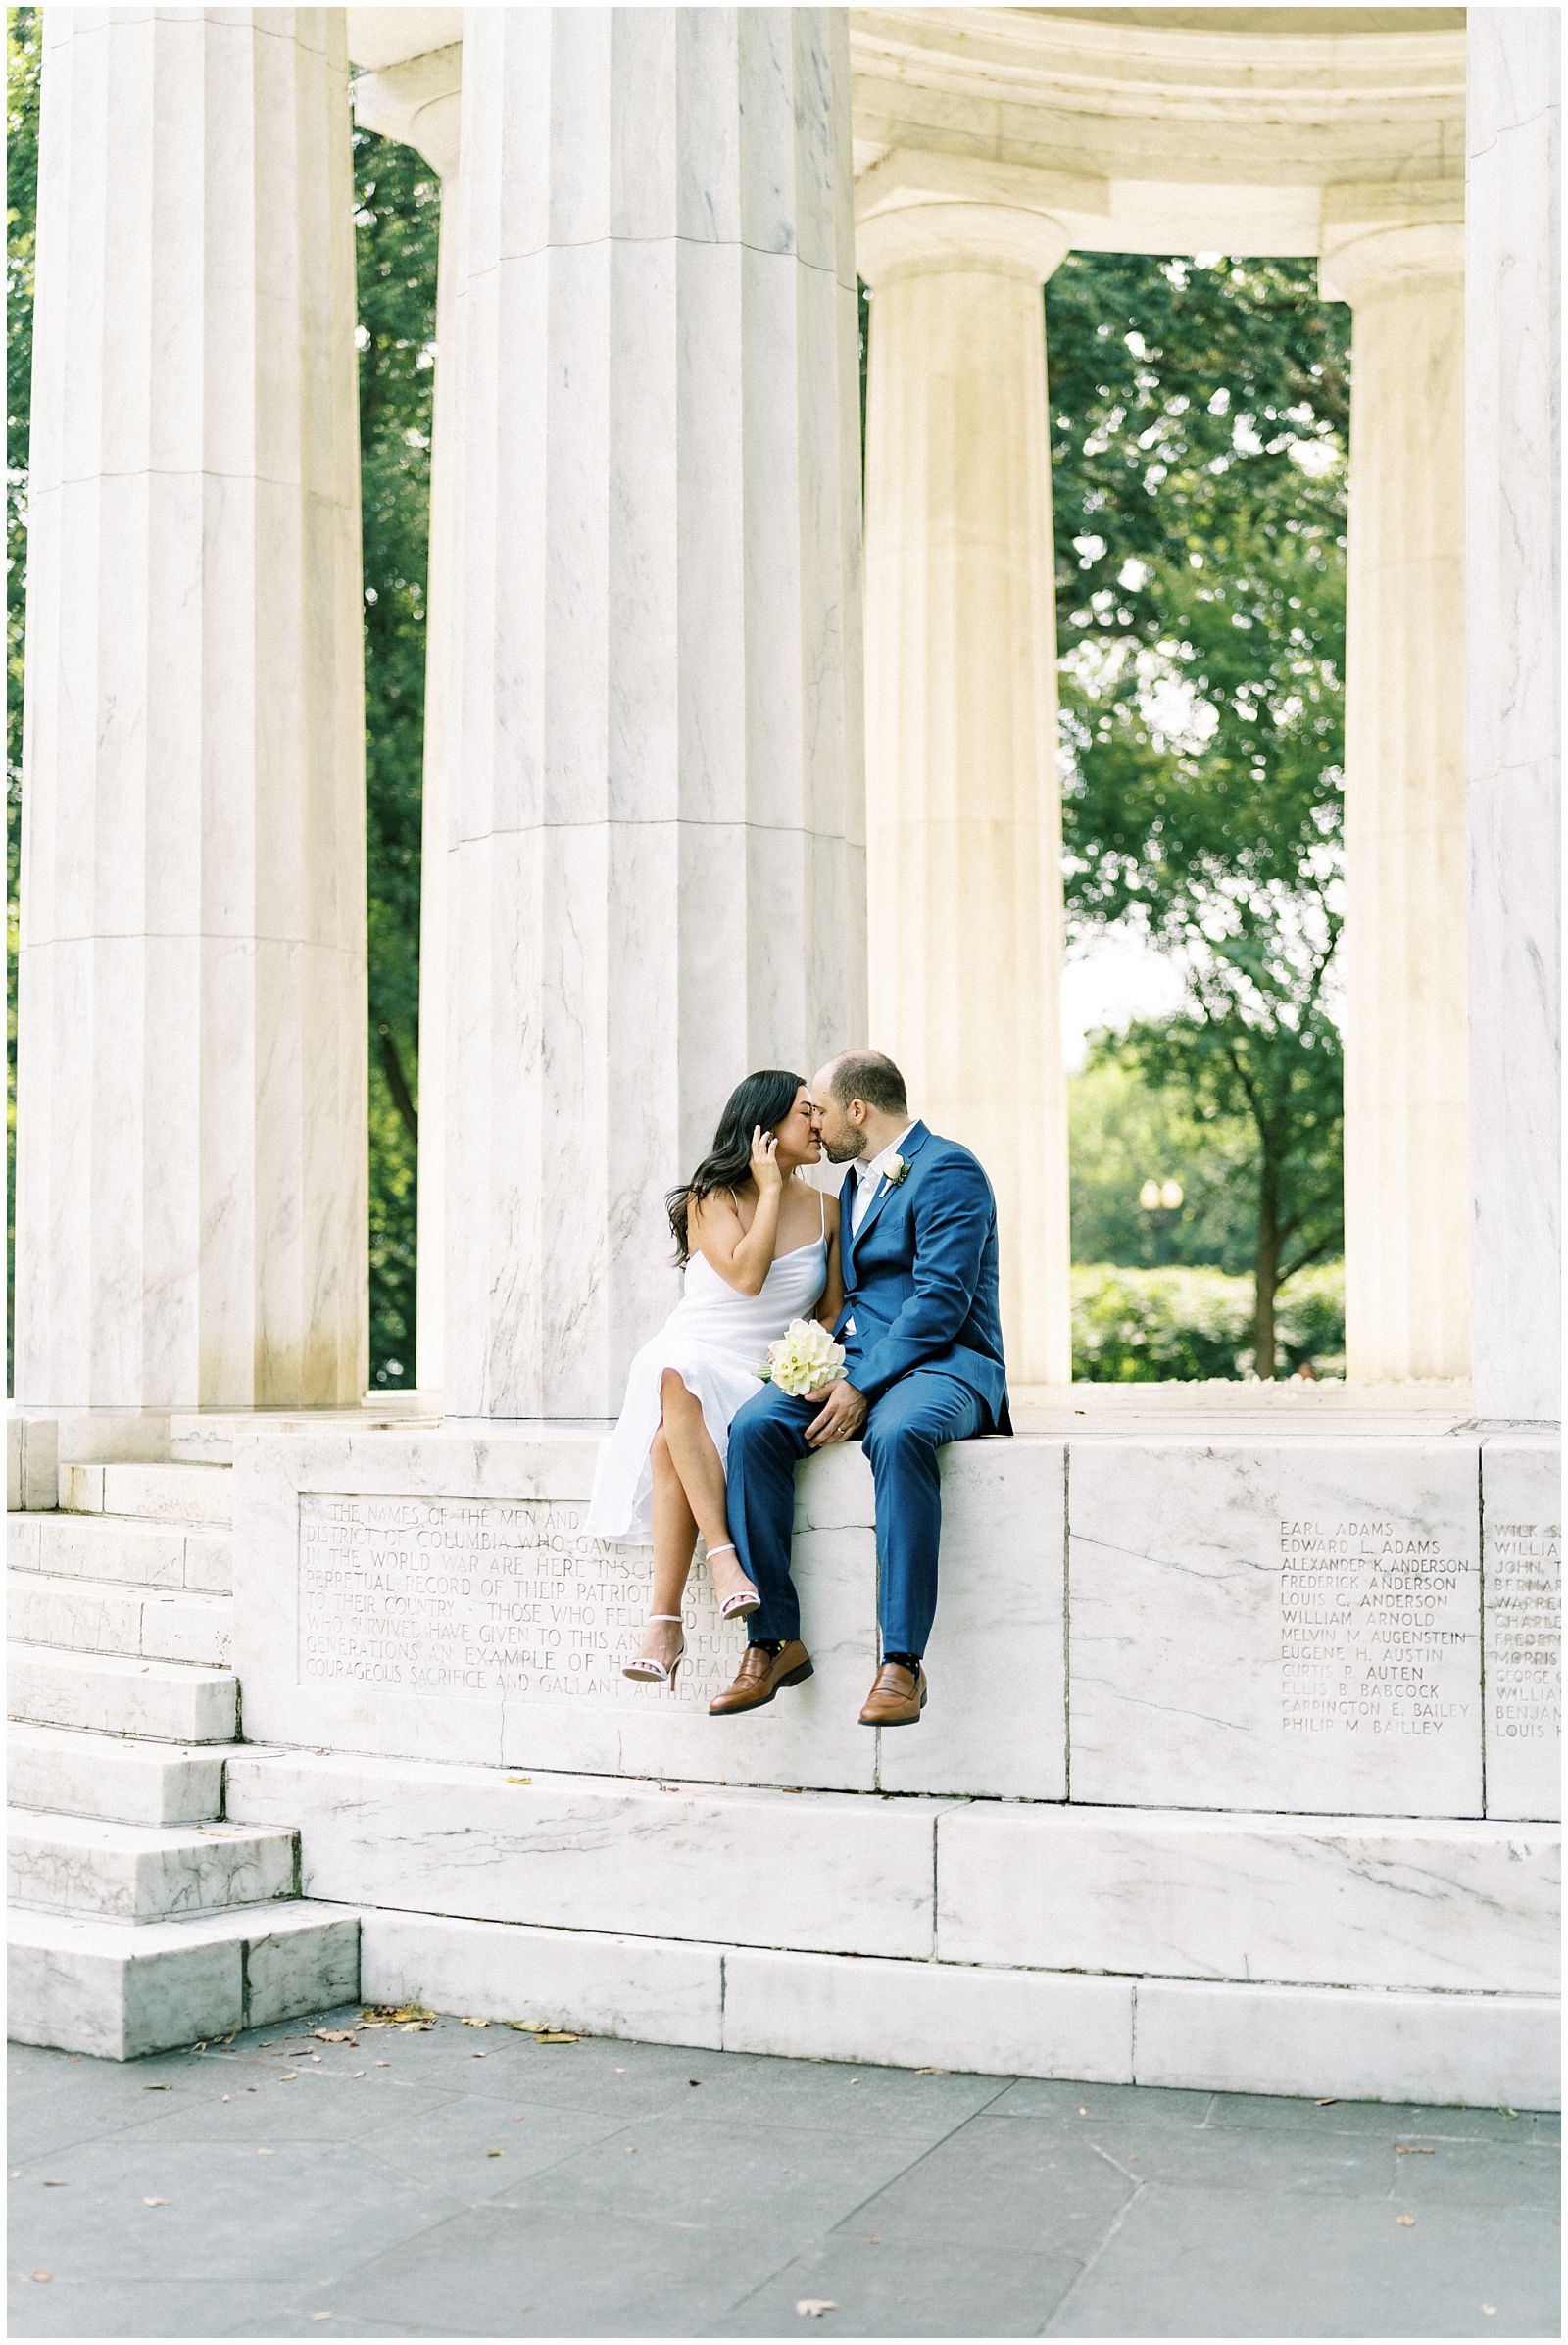 Wedding elopement at the DC War Memorial